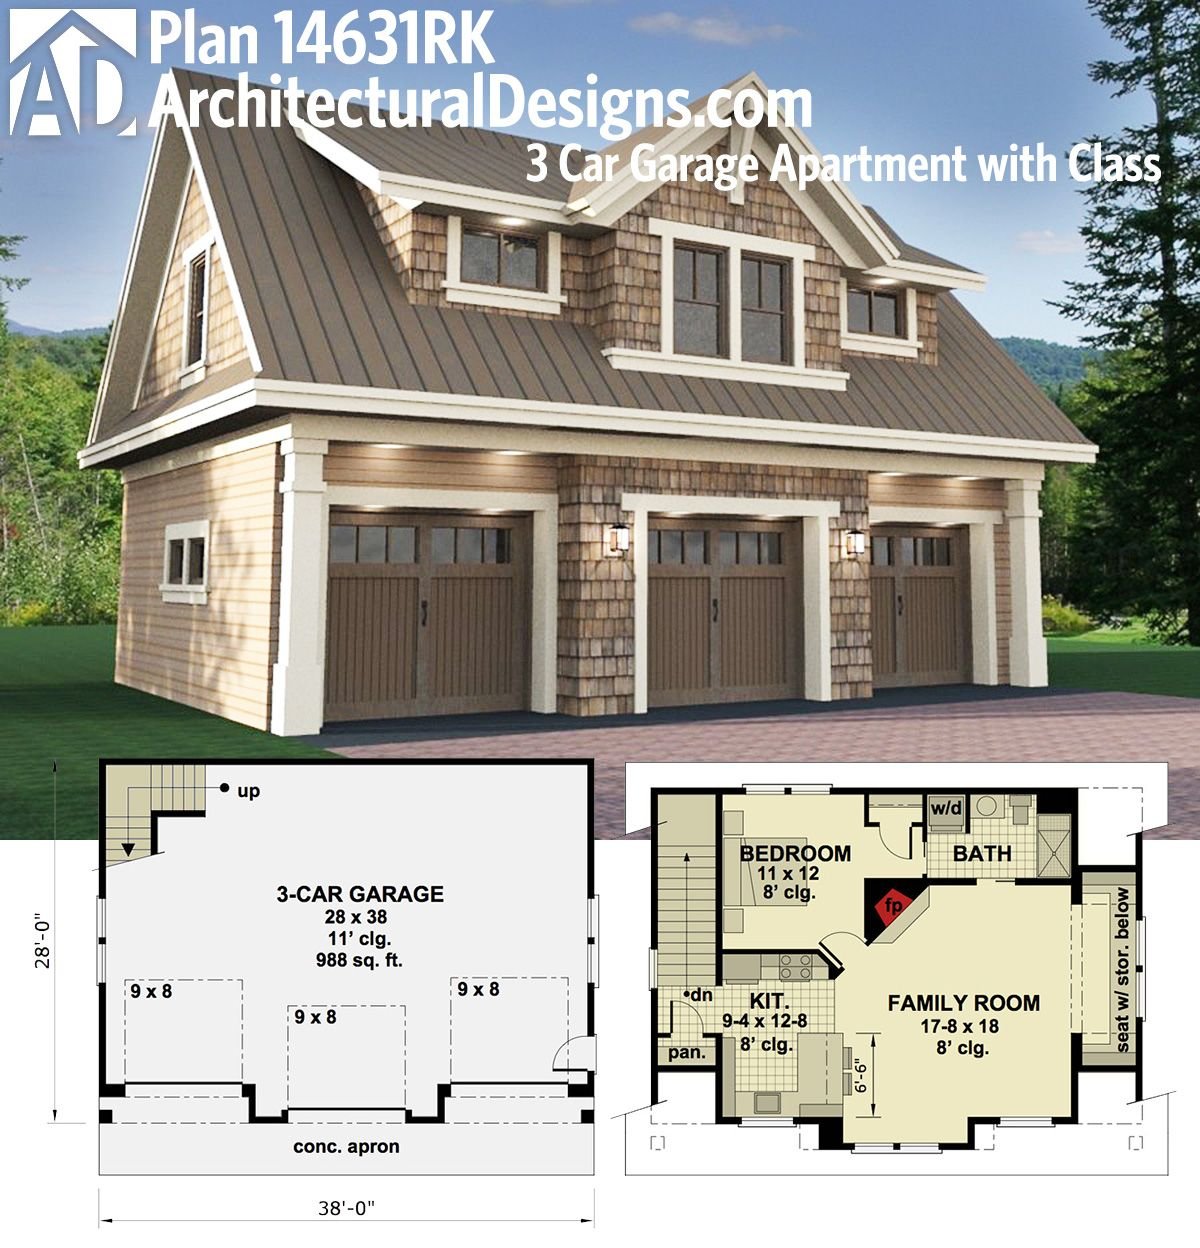 Plan 14631rk 3 car garage apartment with class carriage for House plan with garage